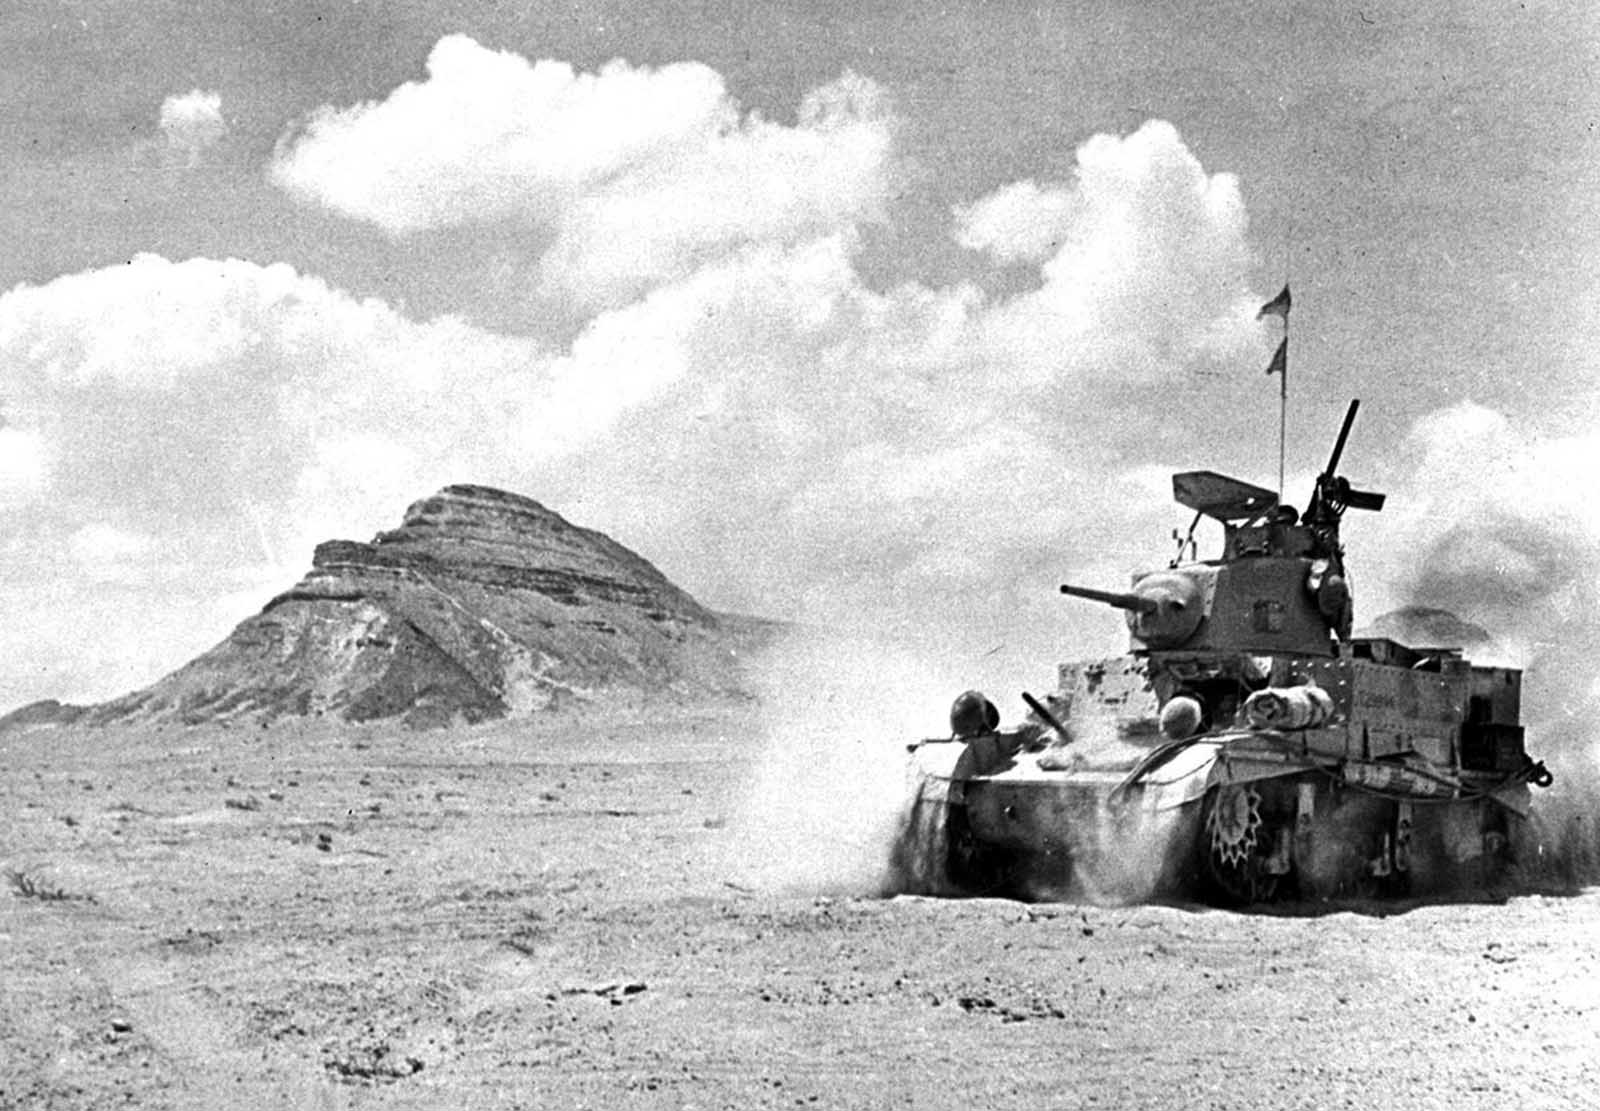 A British unit in a U.S. built M3 Stuart